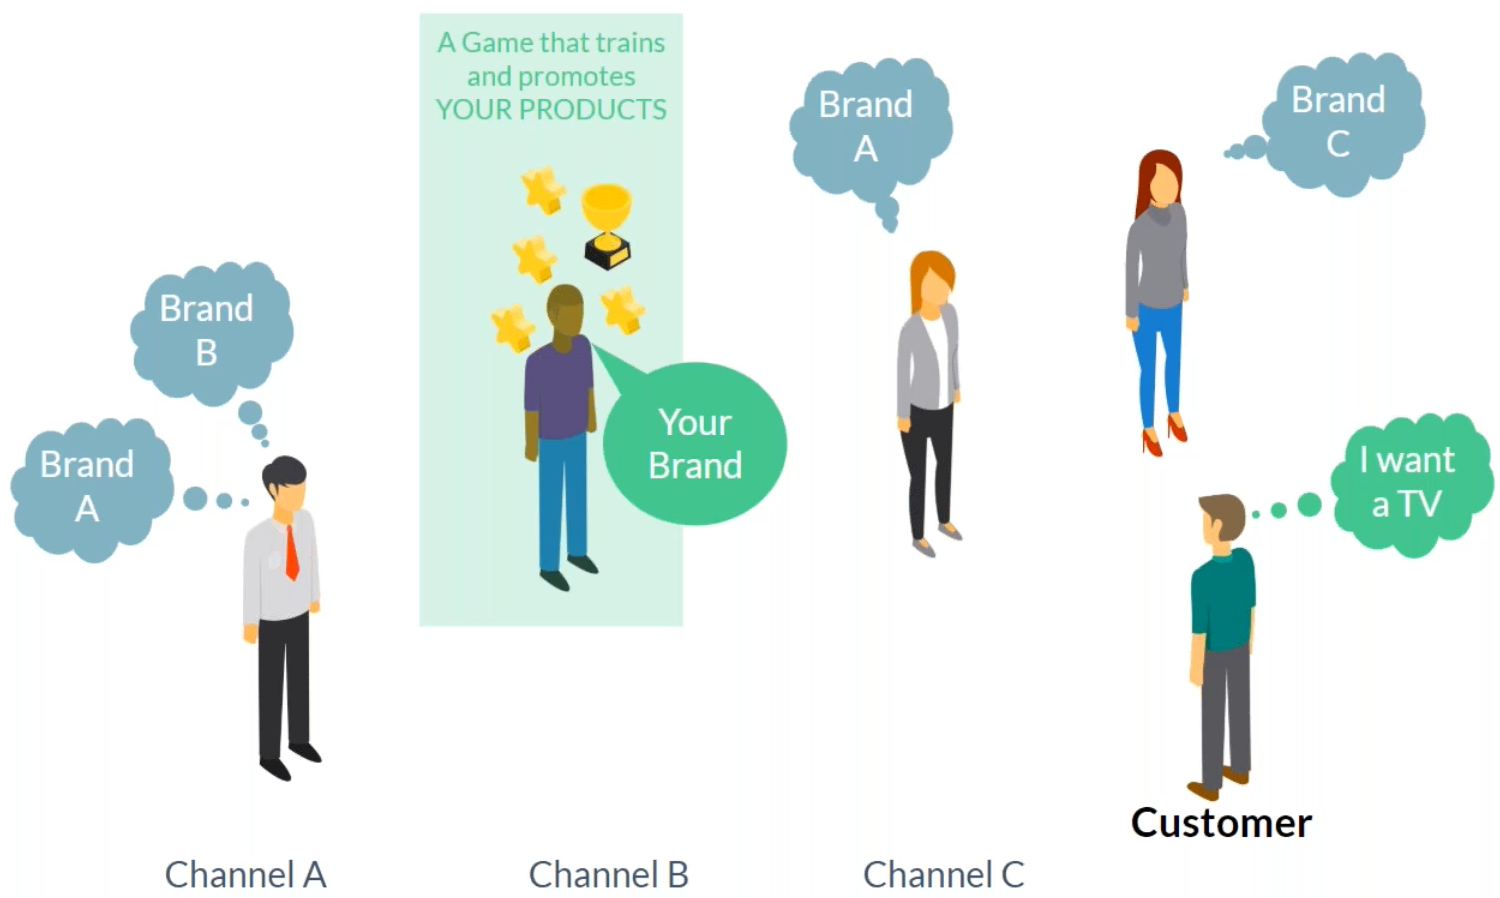 sales - channel - training - brand - atrivity - engagement - measure - covid19 - employees